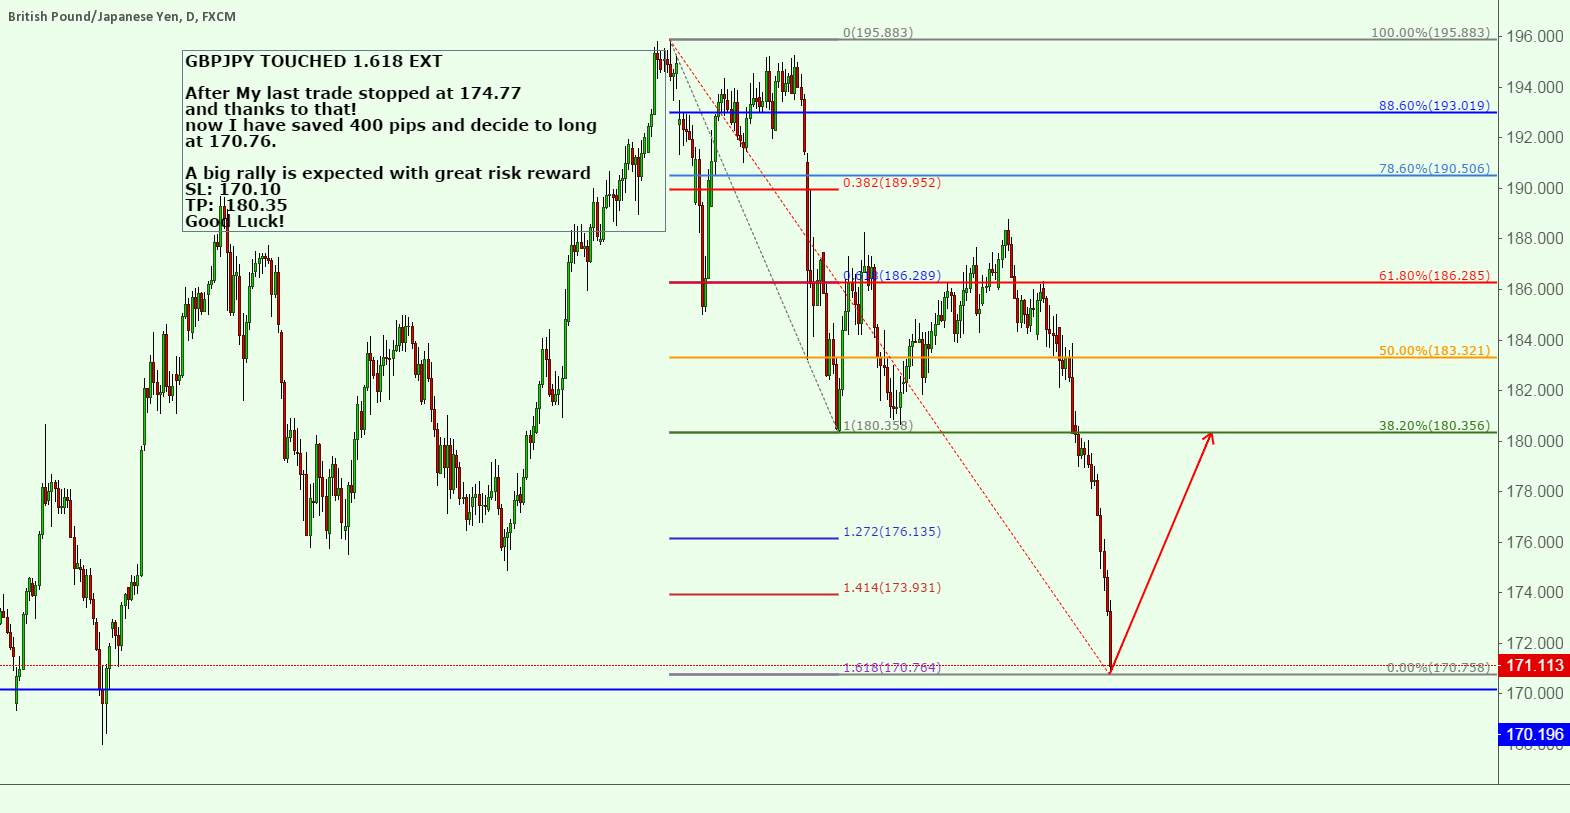 GBPJPY TOUCHED 1.618 EXT